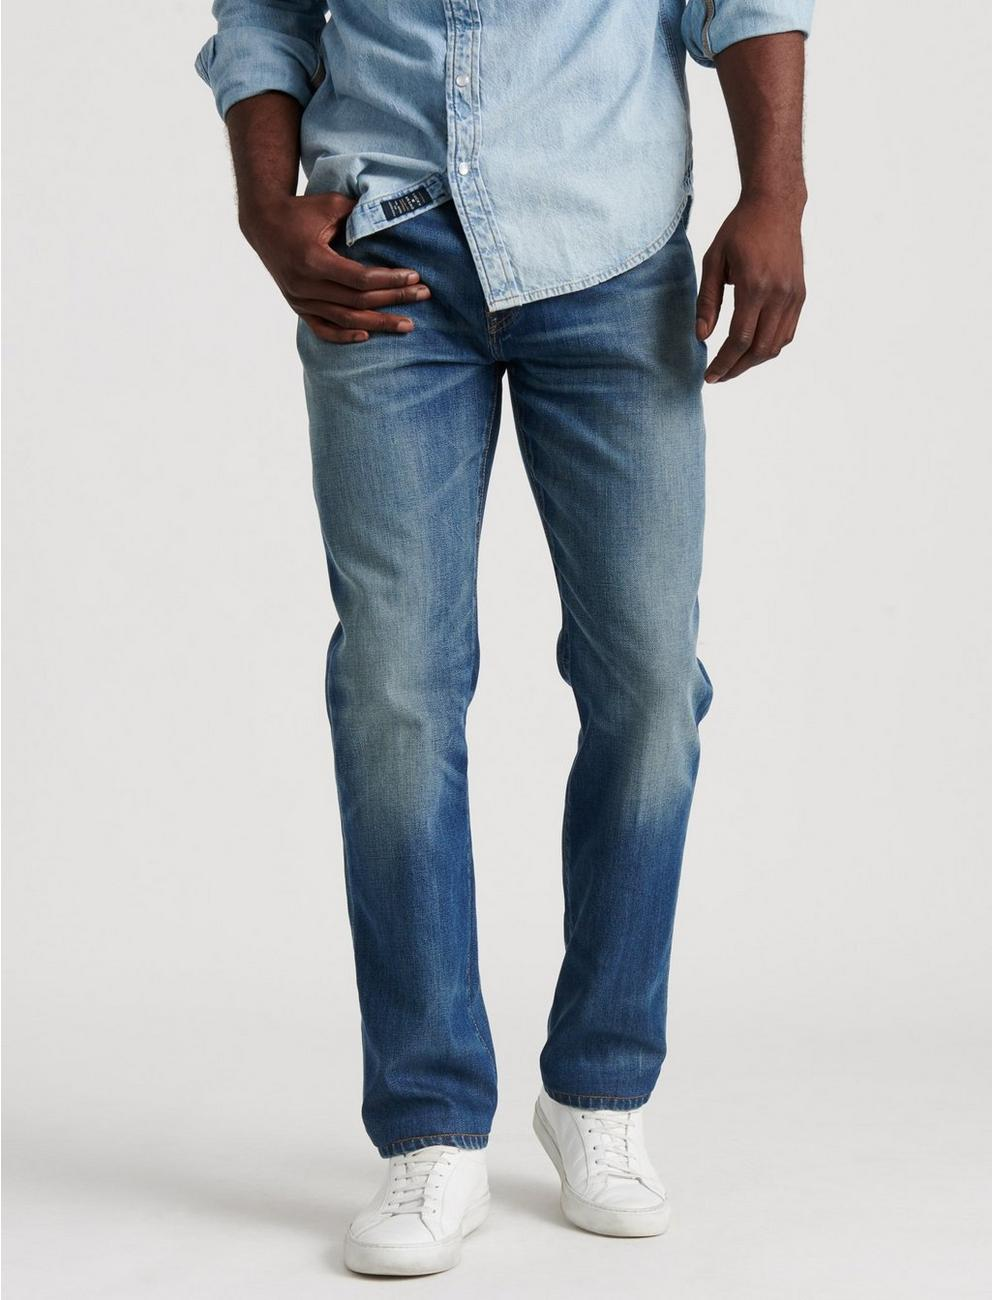 223 STRAIGHT STRETCH JEAN, KRONE